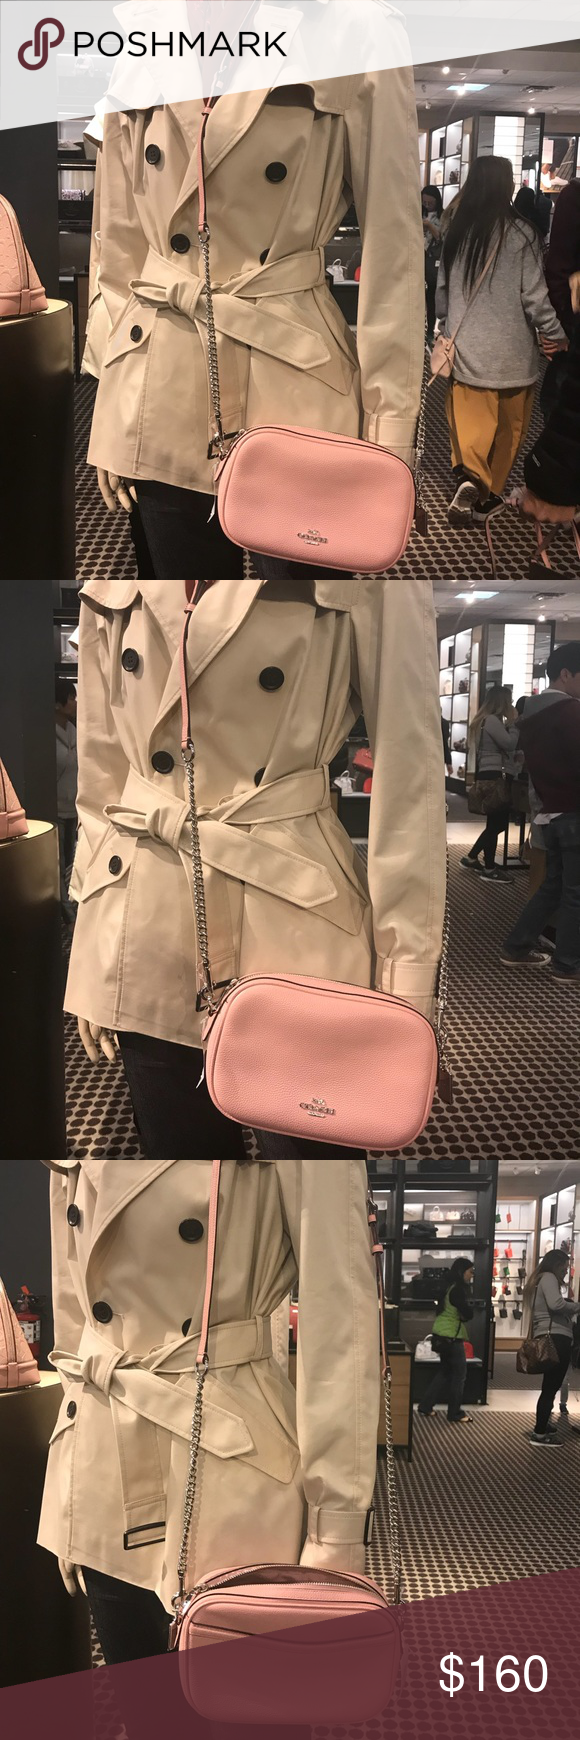 fc44e394a7fc2 Coach Pebble Leather Isla Chain Crossbody Bag Details  Color  Blush  Measurements Body  8